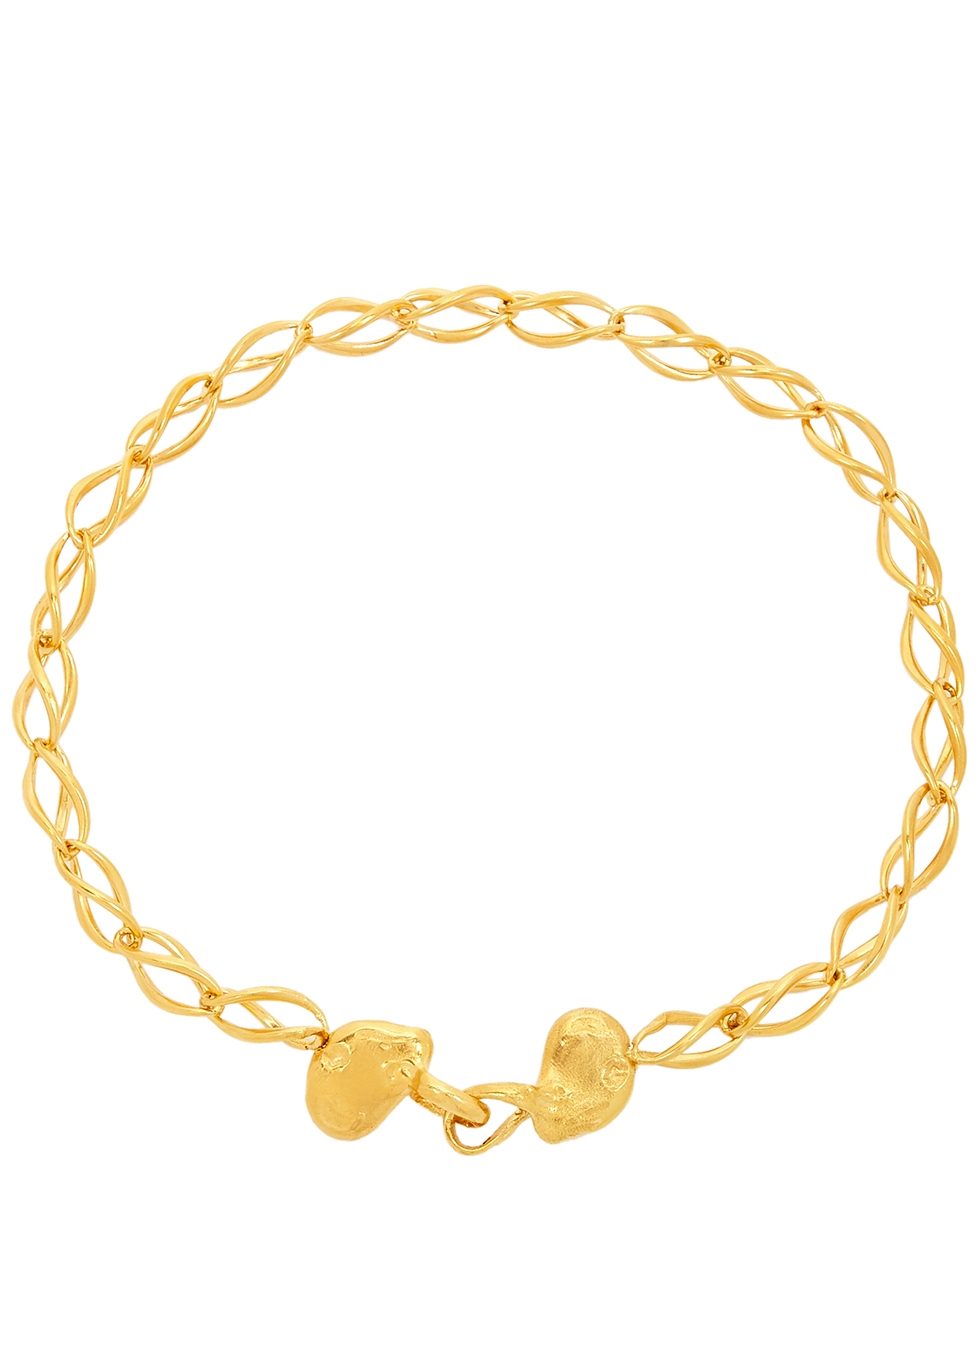 The Wandering Stars 24kt gold-plated choker